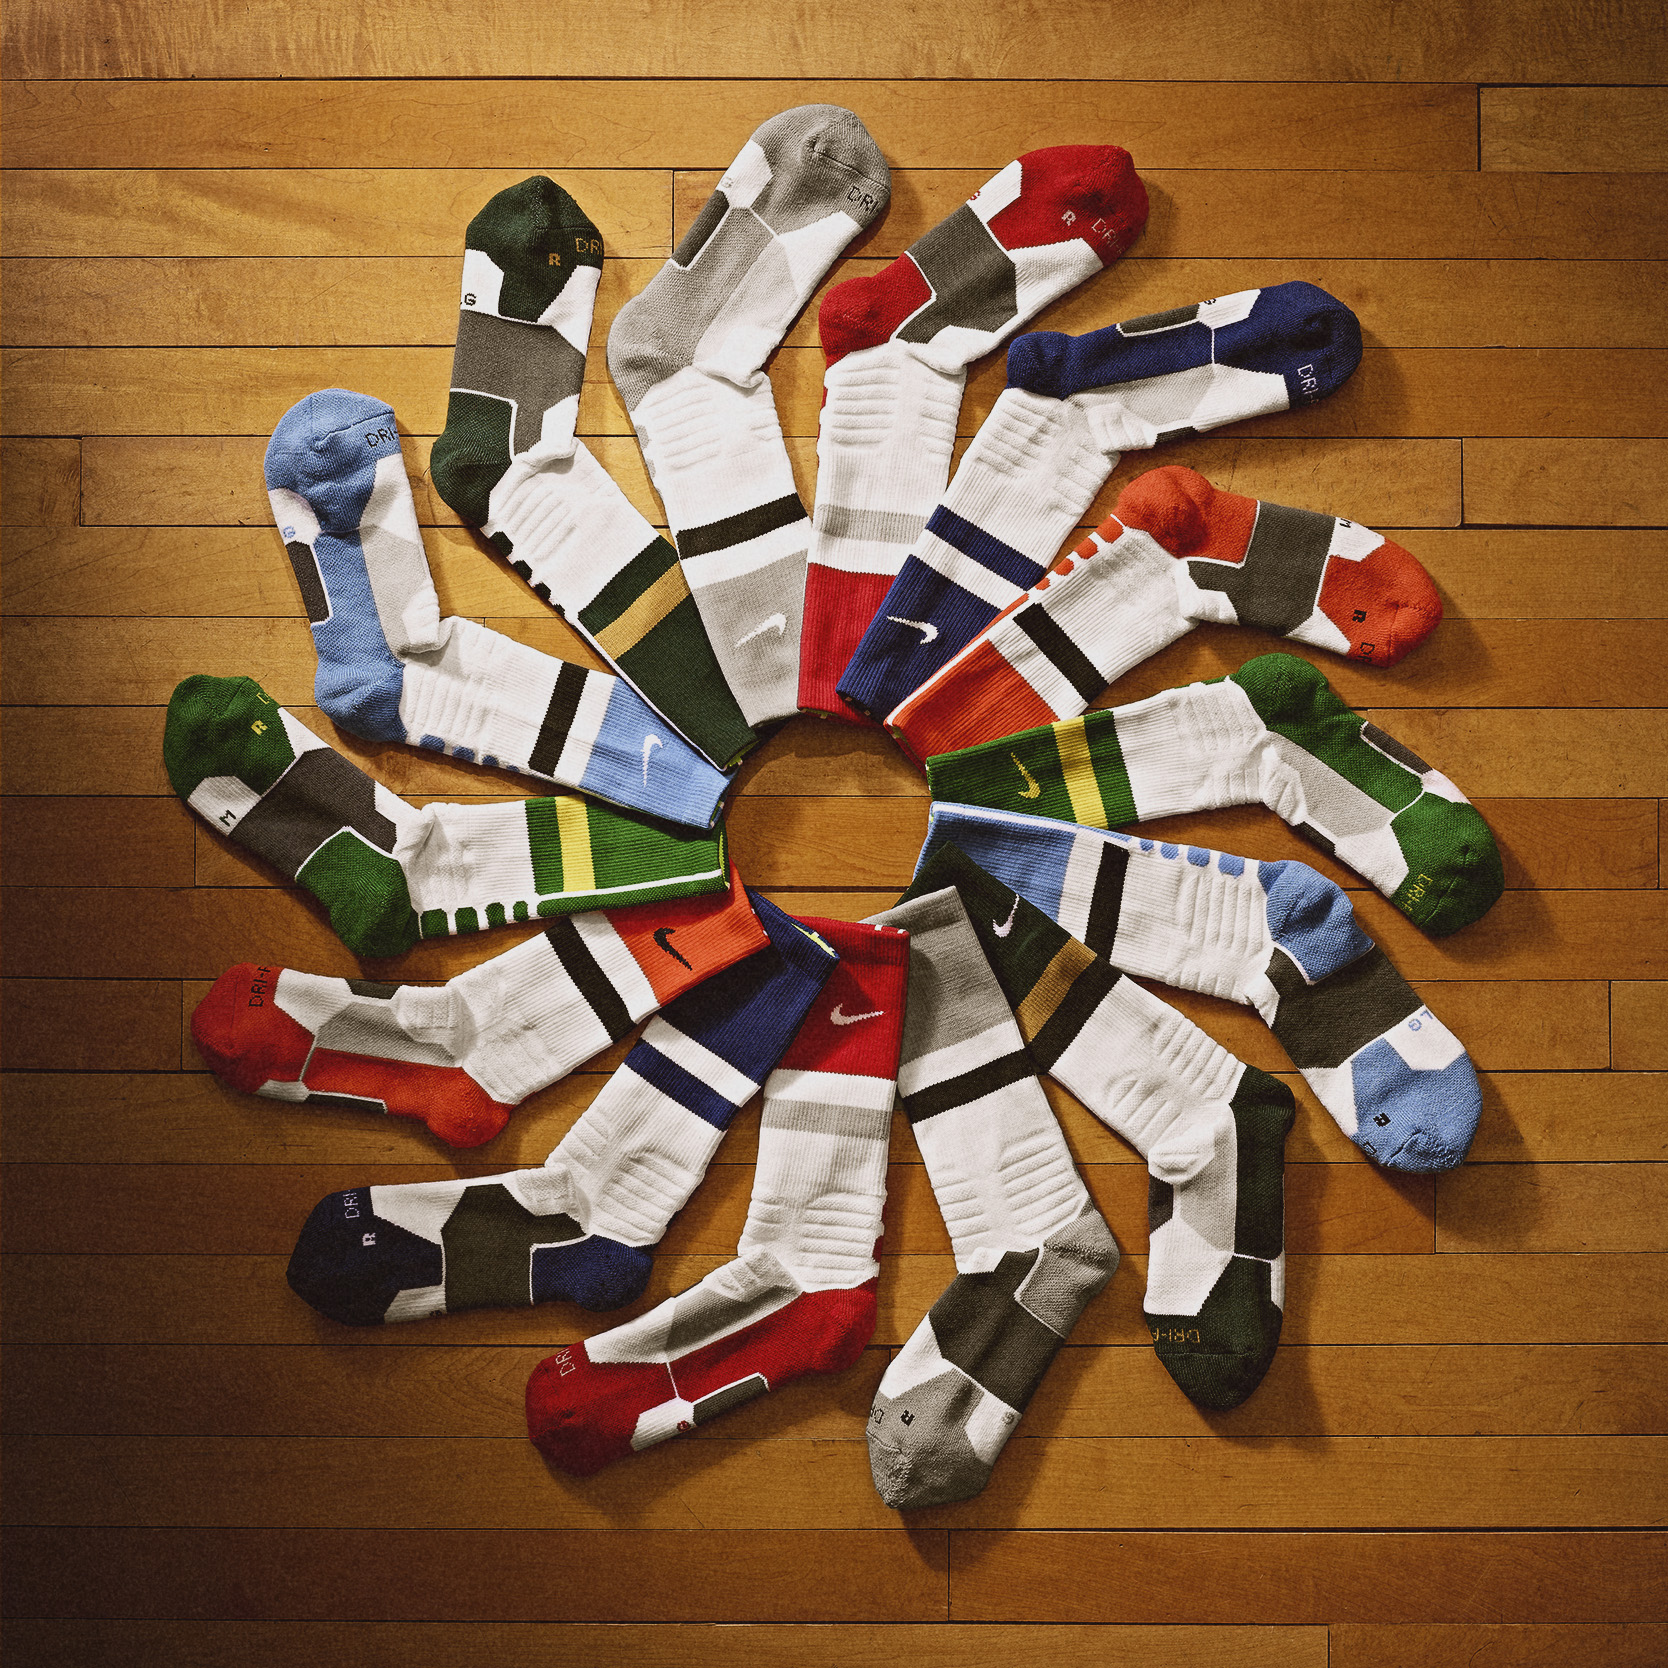 Nike_NCAA_March_Madness_SOCKS_v2_28213.jpg